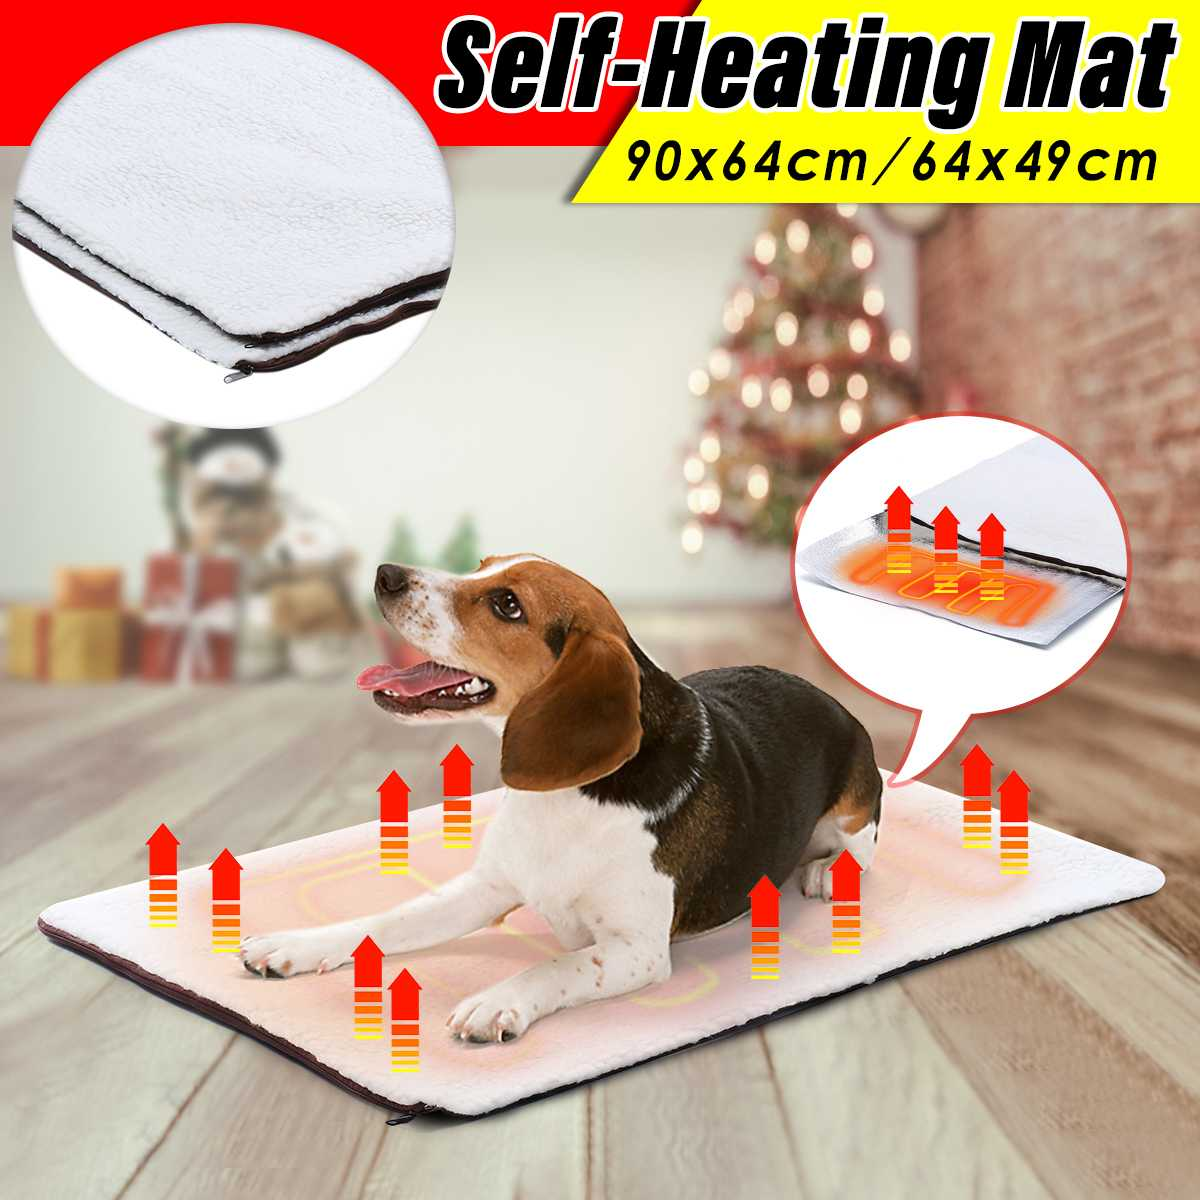 Washable Self Heating Dog Cat Blanket Pet Bed Thermal No Electric Blanket Super Soft Puppy Cat Blanket Beds Mat